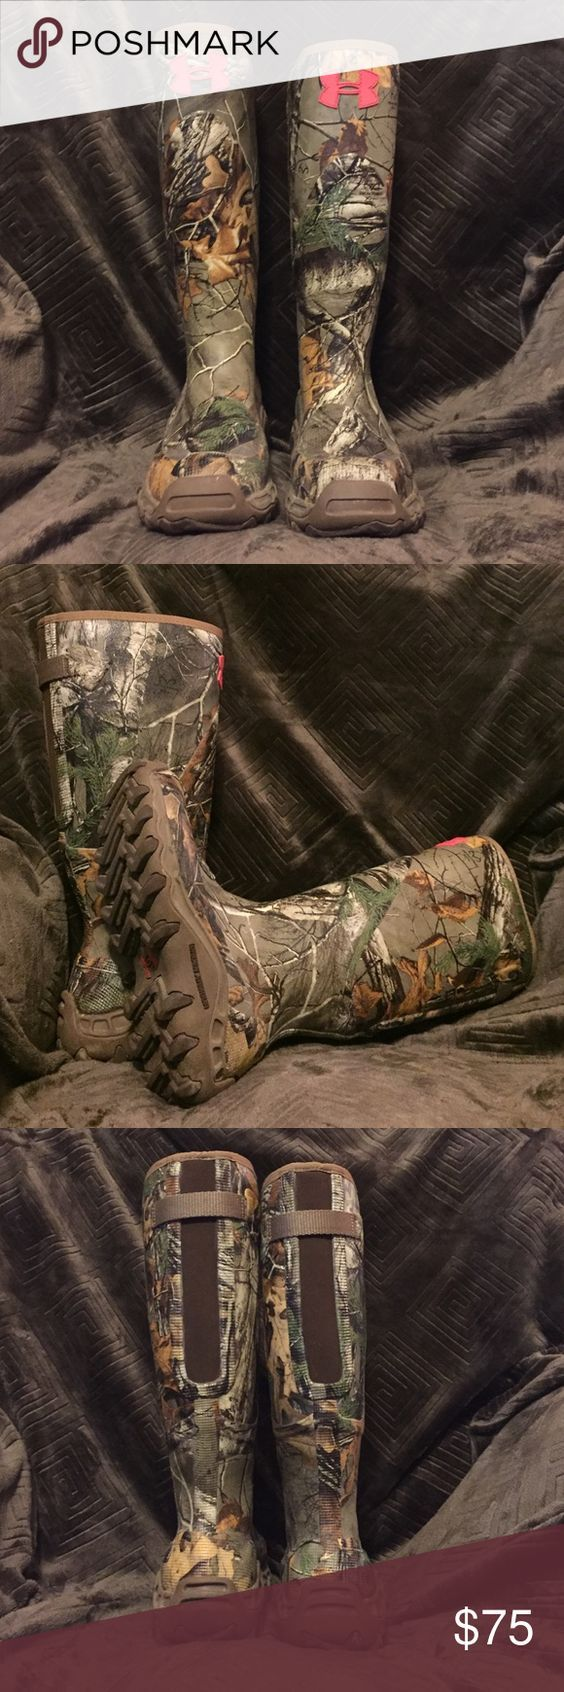 Under Armour Womens Haw'madillo Realtree Xtra GOOD CONDITION. Bought these as last pair and ended up being too small for me. Great boot for hiking and turkey hunting. Waterproof and would be comfortable if right size. Perfect for any lady looking for UA hunting gear! Under Armour Shoes Winter & Rain Boots: